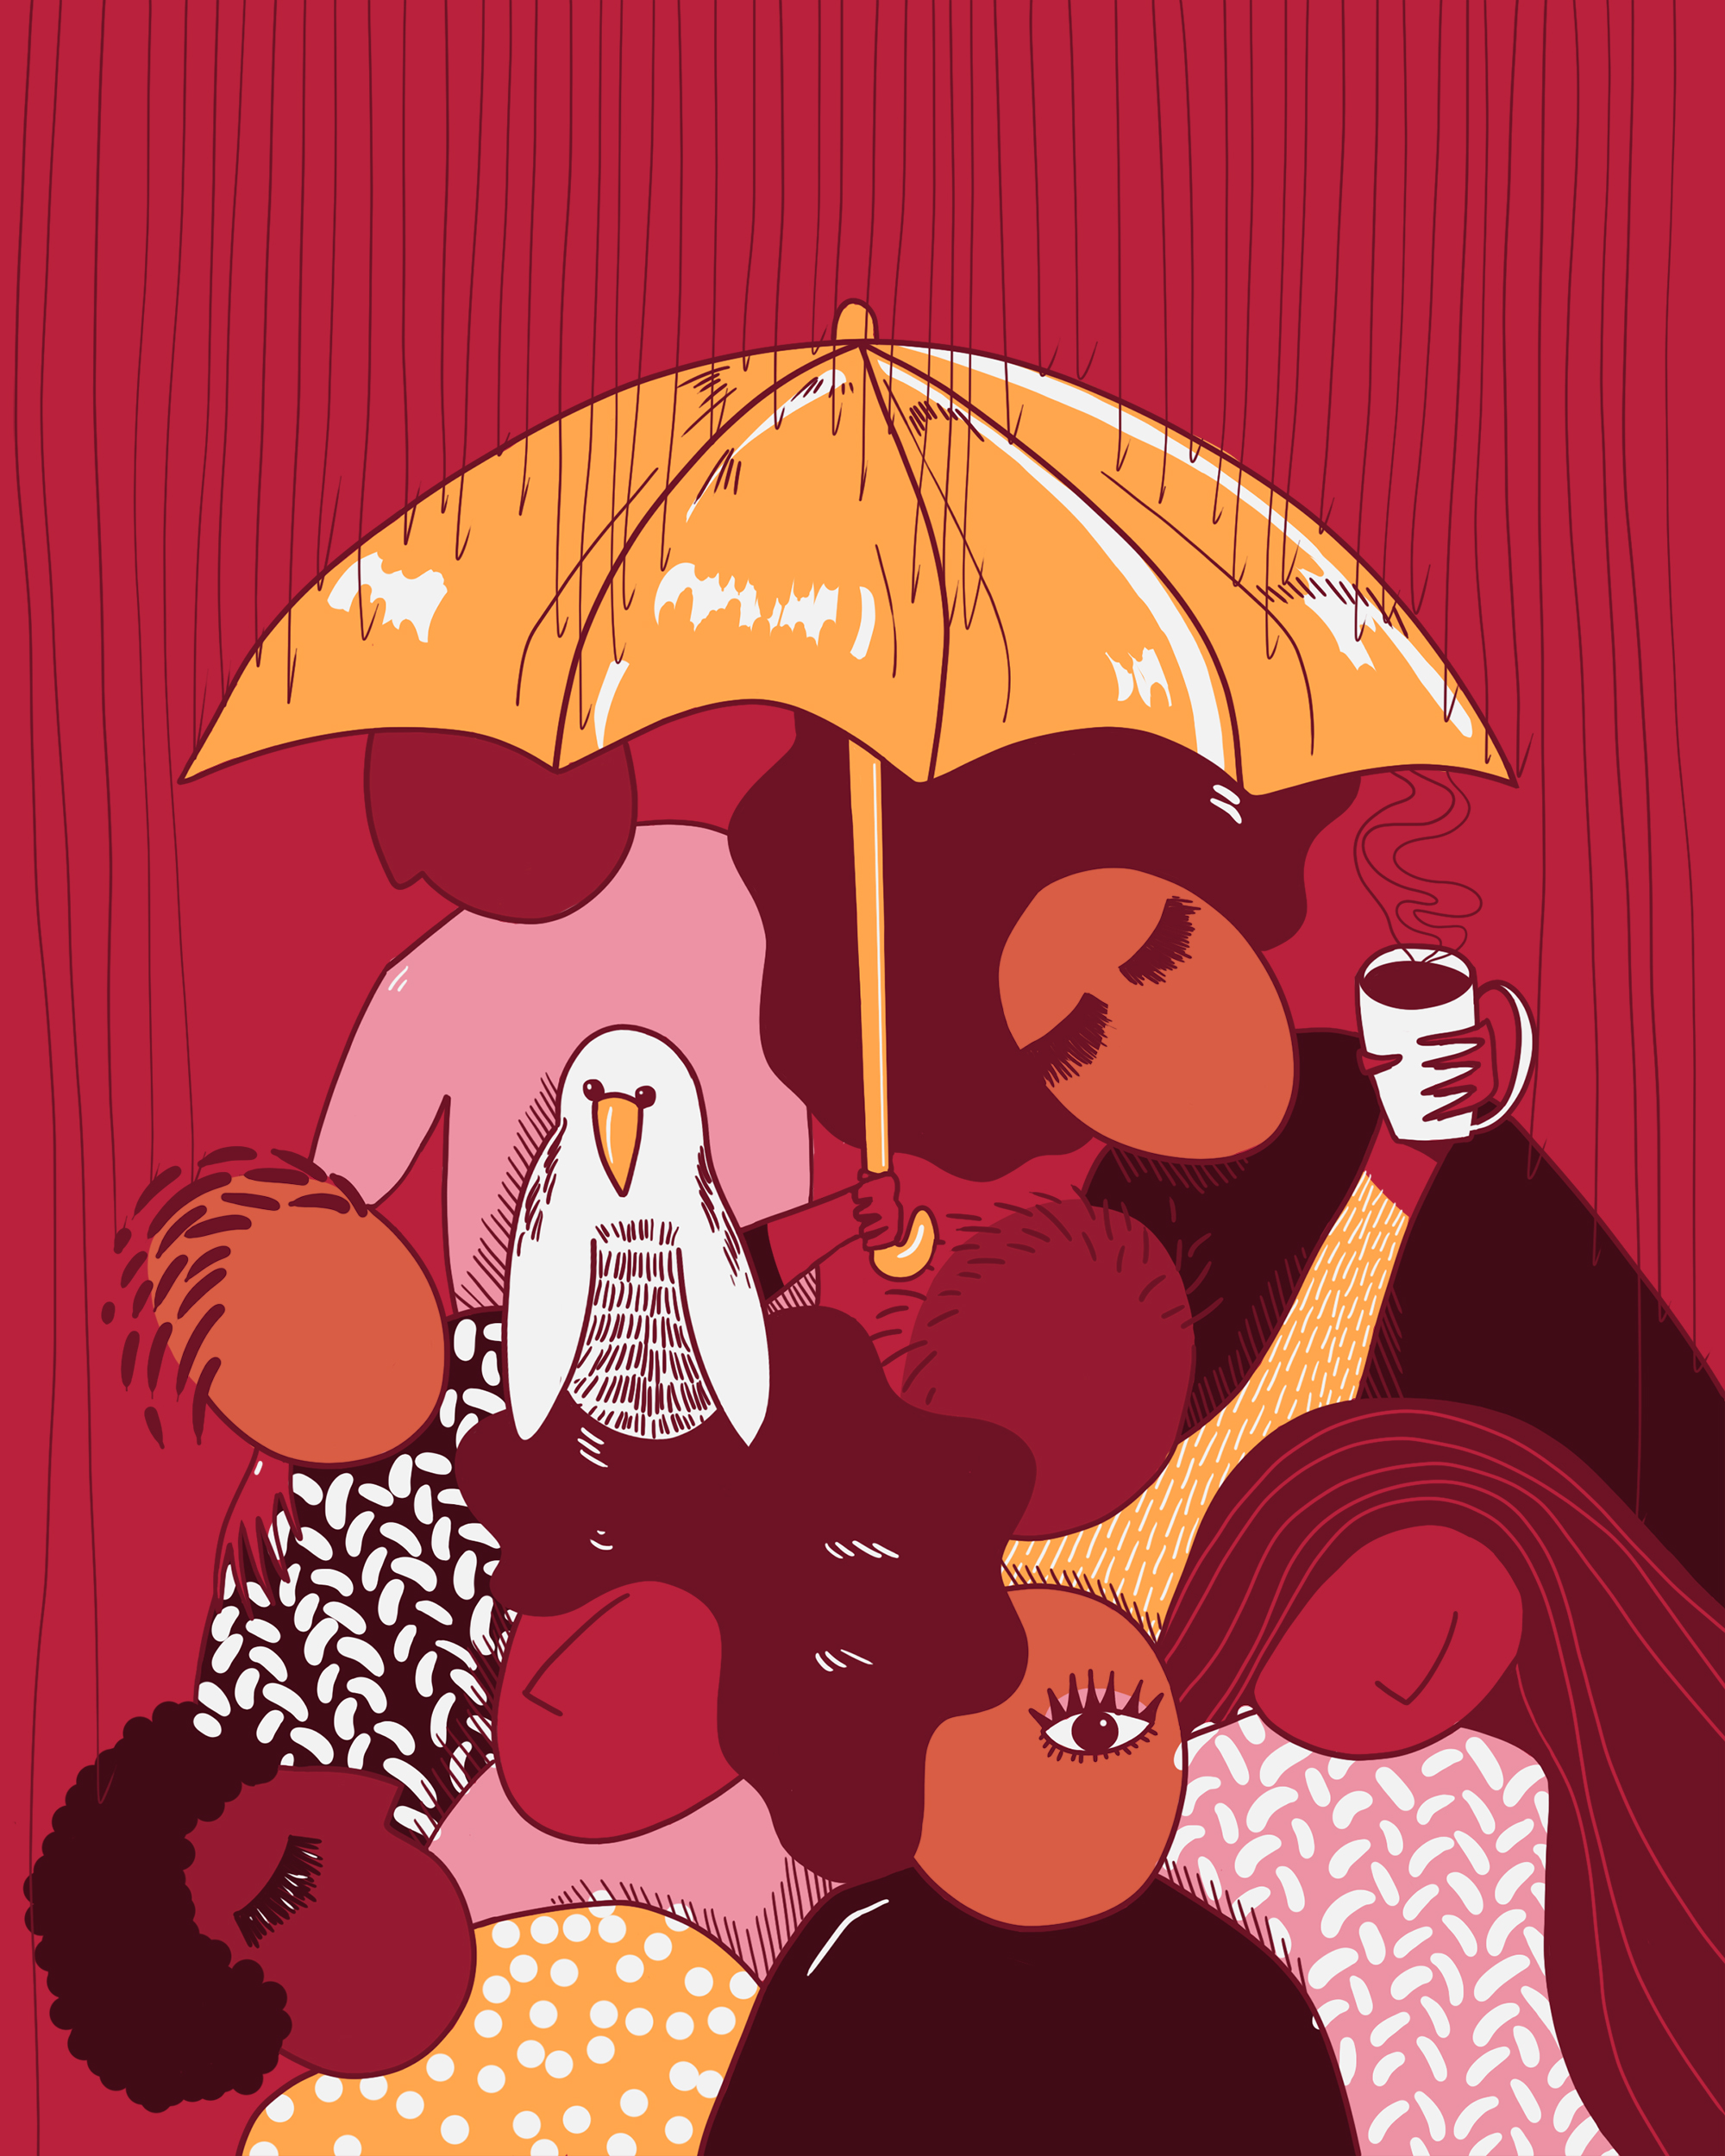 Illustration by Stefanie Auger-Roy. The illustration features 8 characters together holding an orange umbrella on a bright burgundy background.